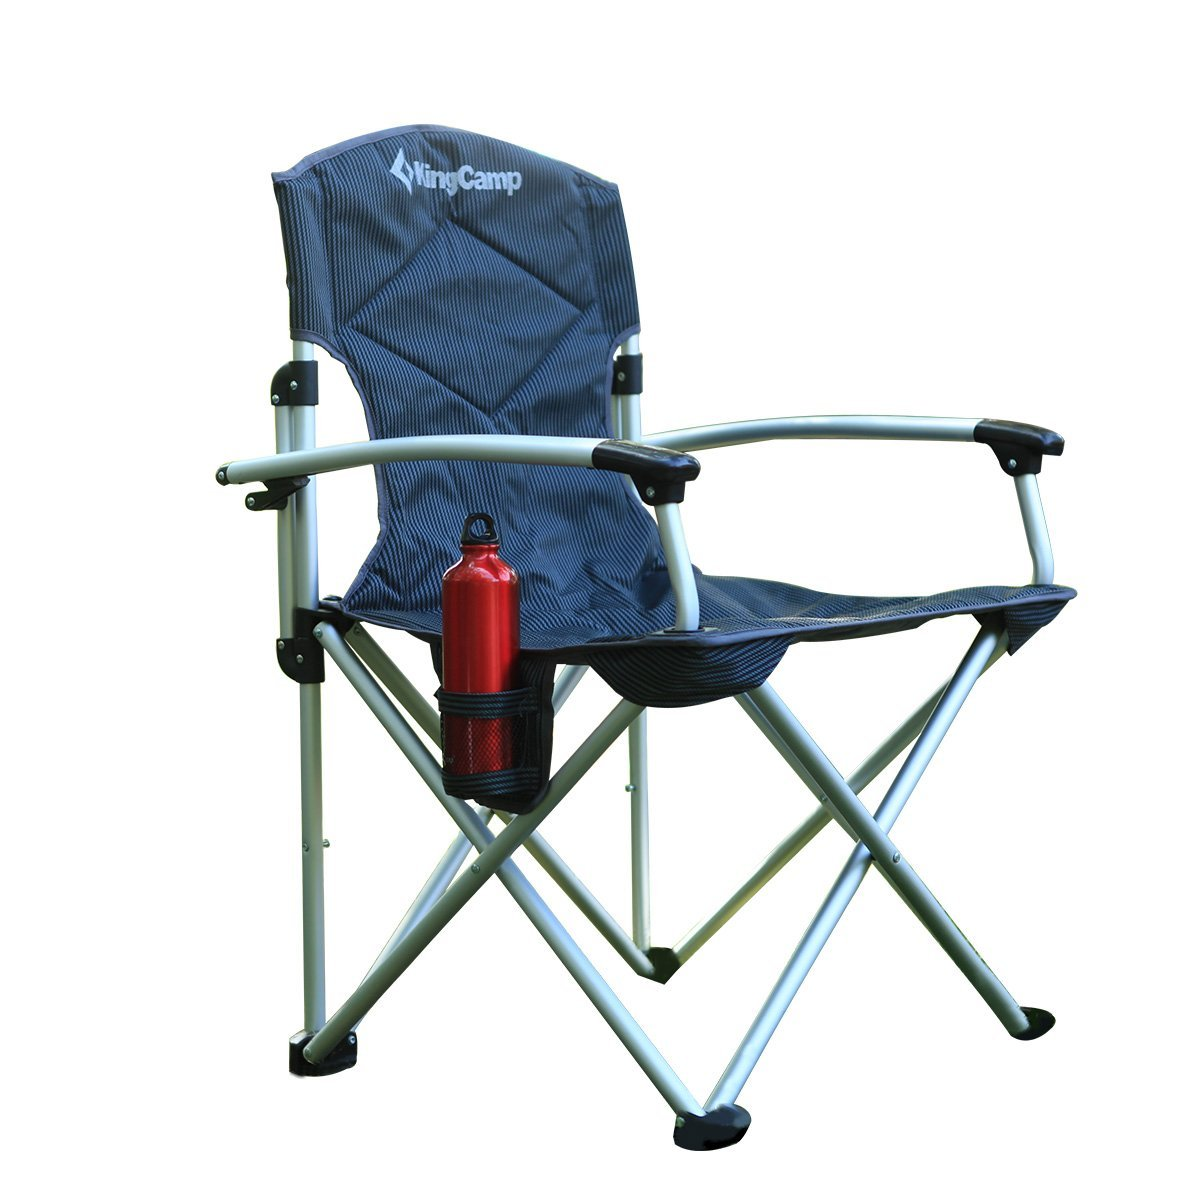 Kingcamp Aluminum Arms Folding Outdoor Camping Travel Chair With Carry Bag